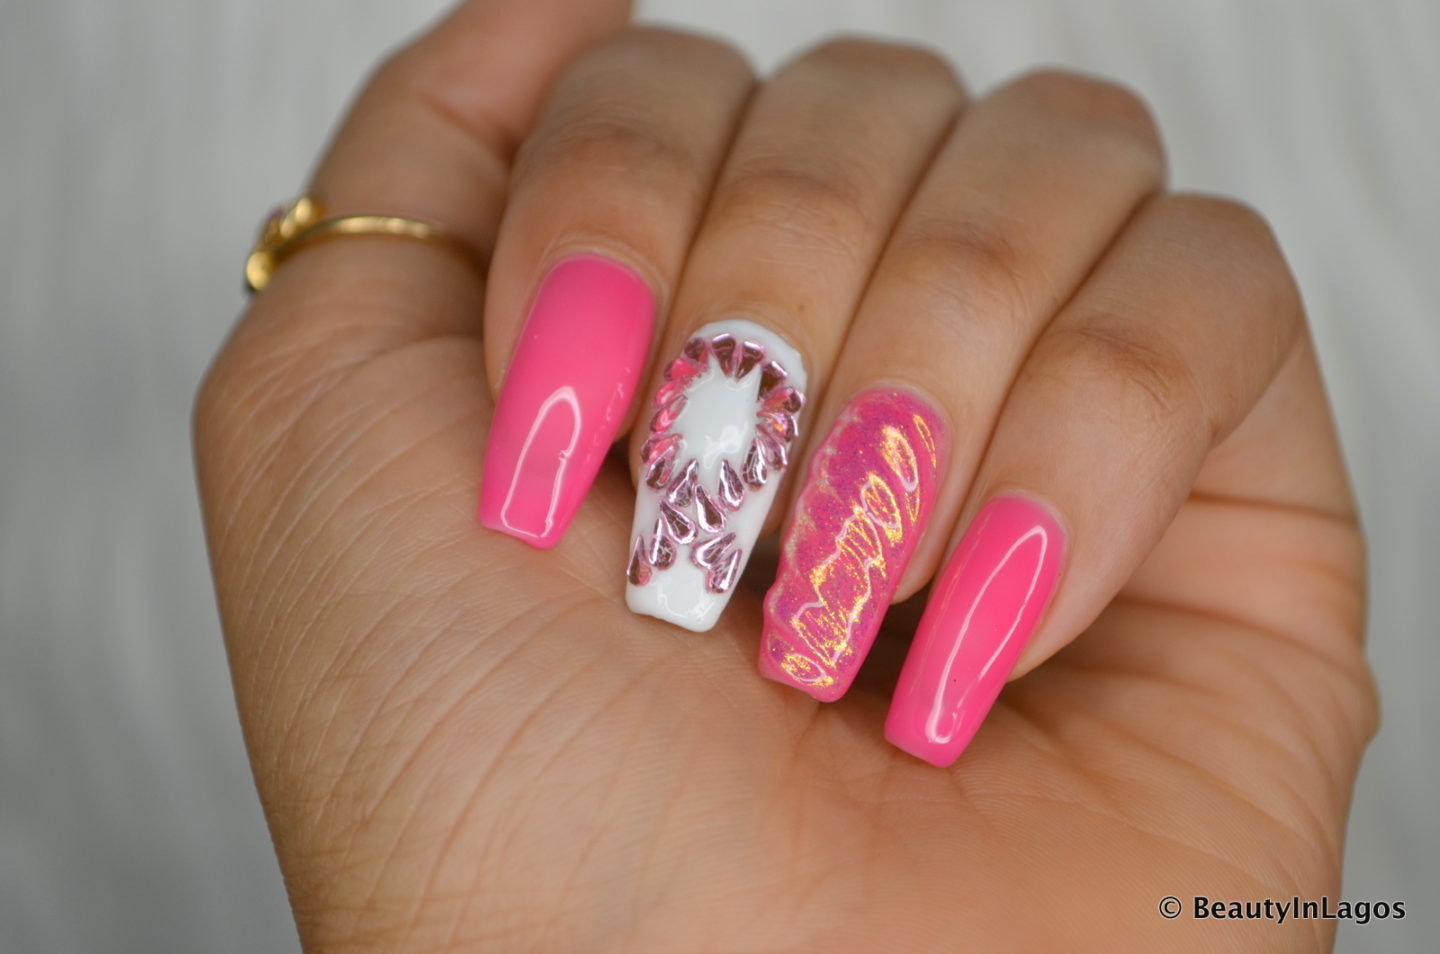 NAIL TIPS: The Right Way To Remove Gel/Acrylic Manicures